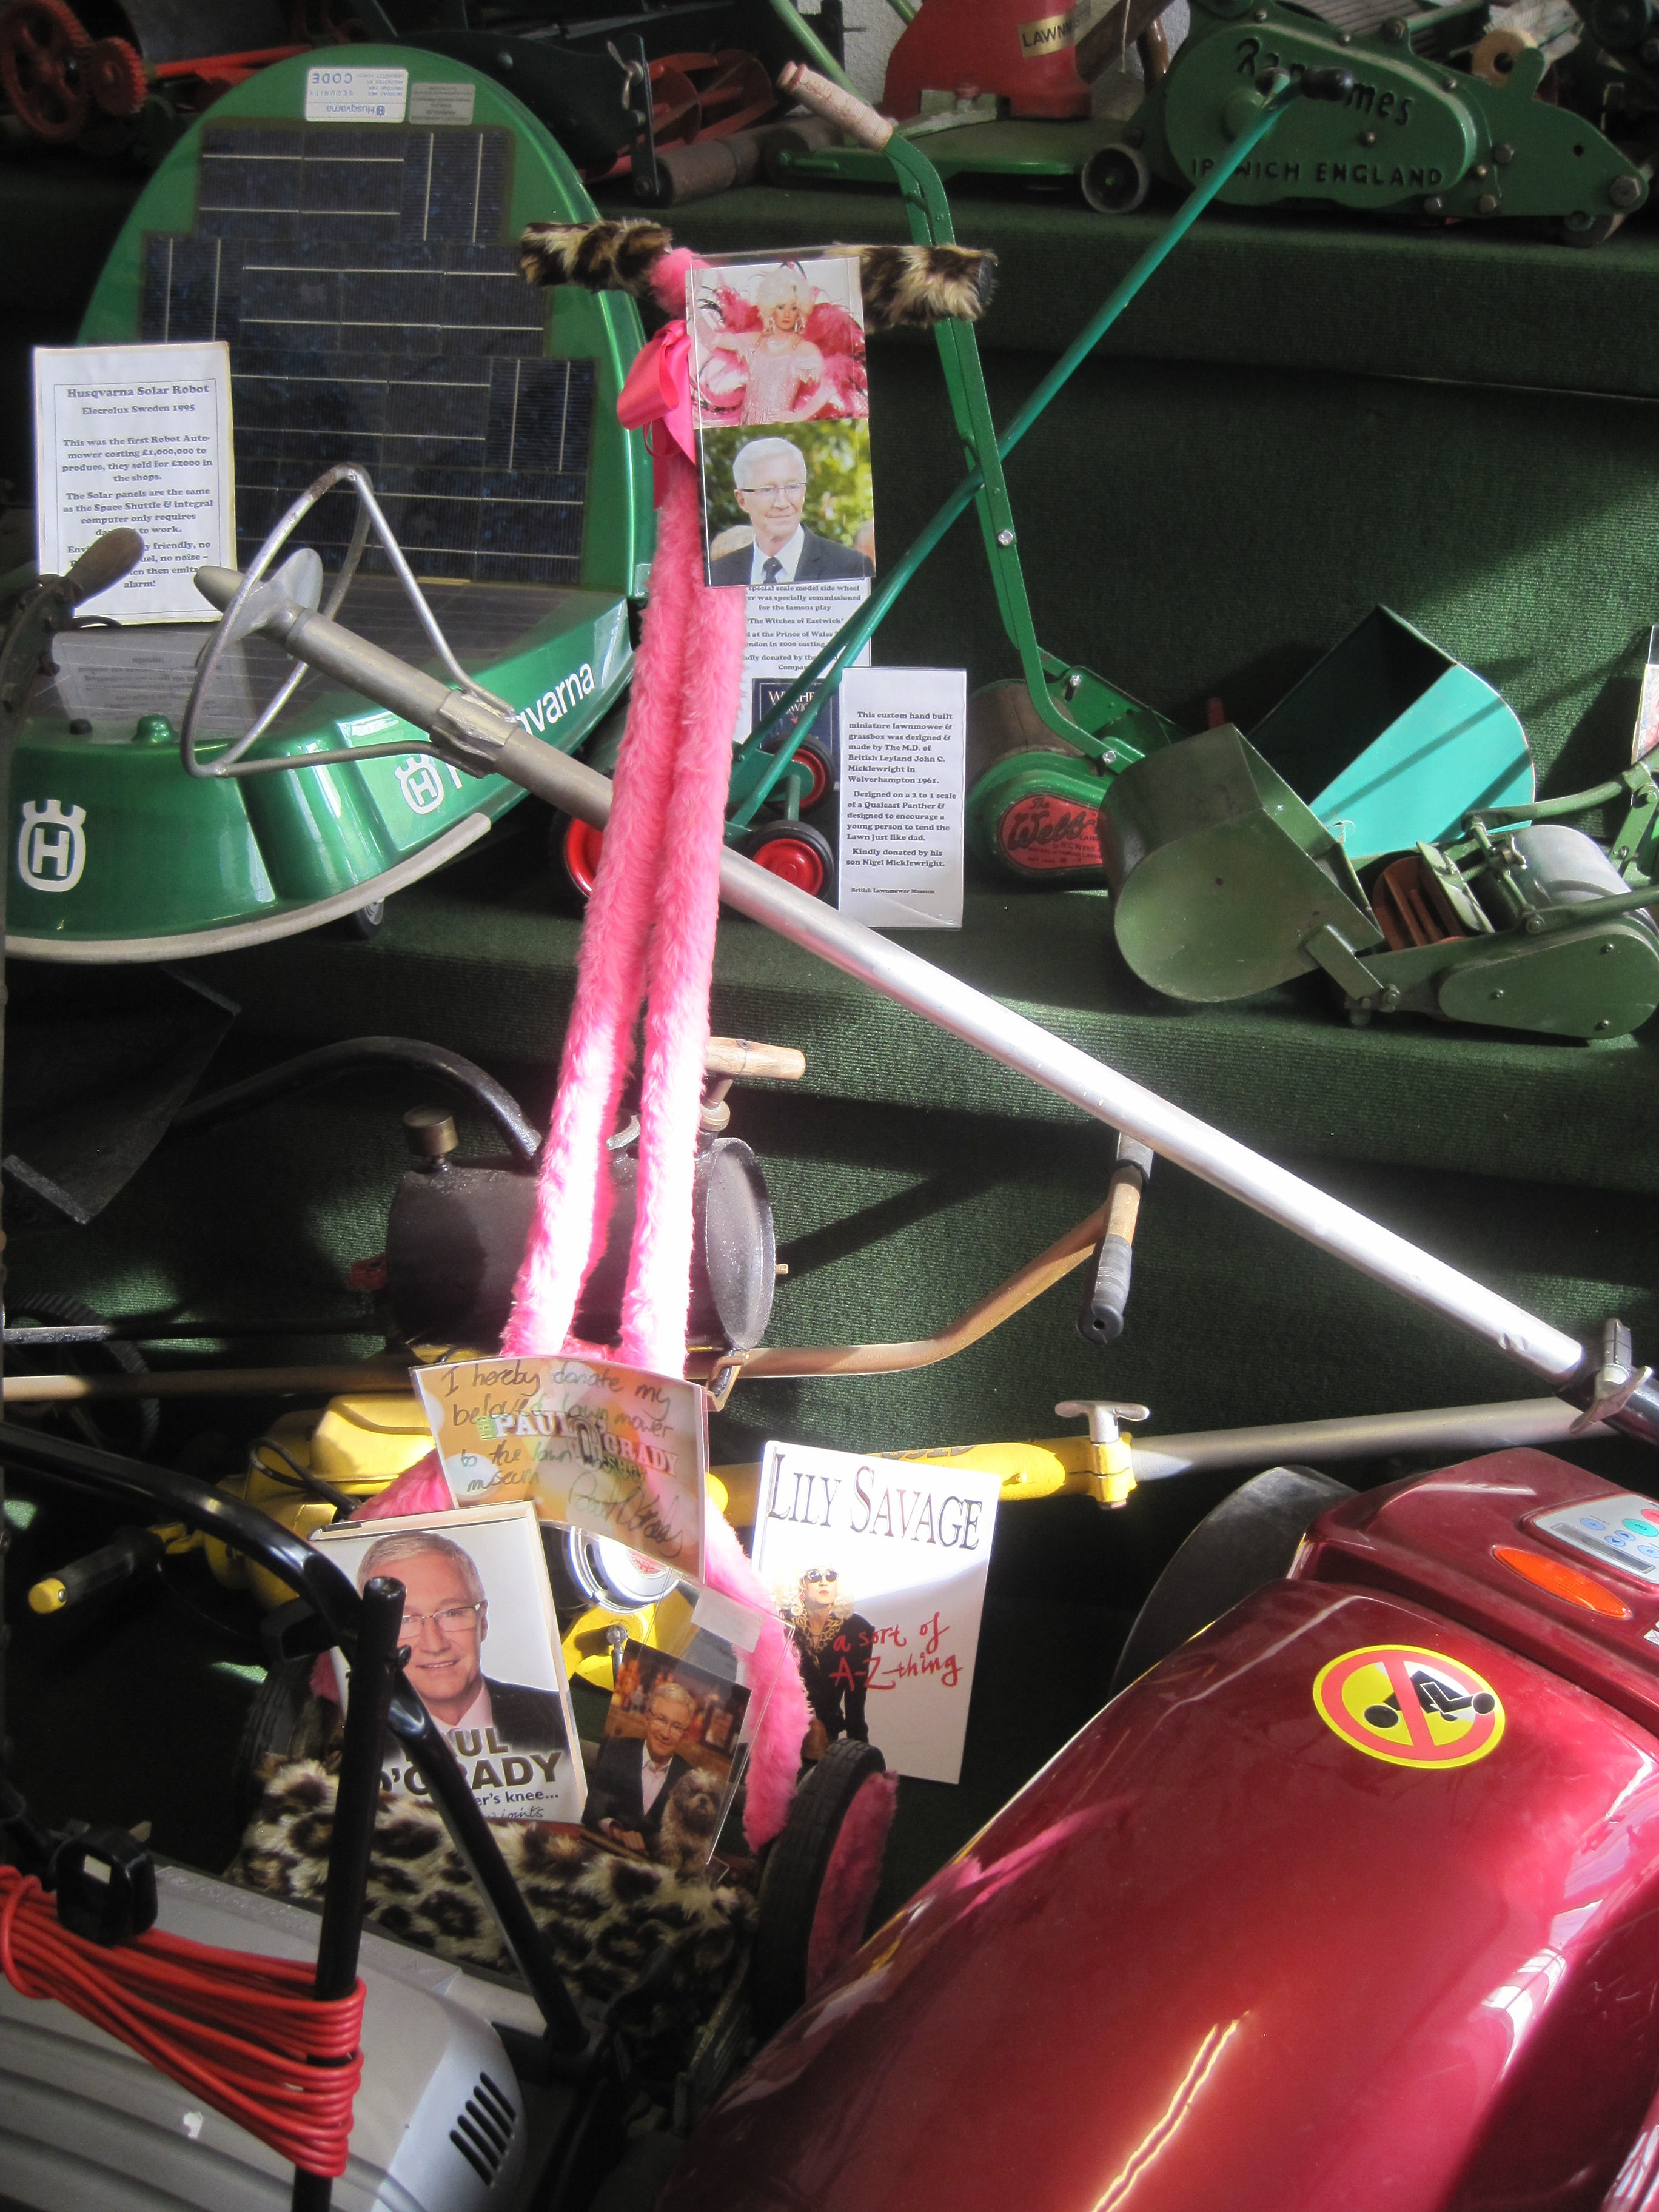 Paul O'Grady's pink push mower - photo by Juliamaud